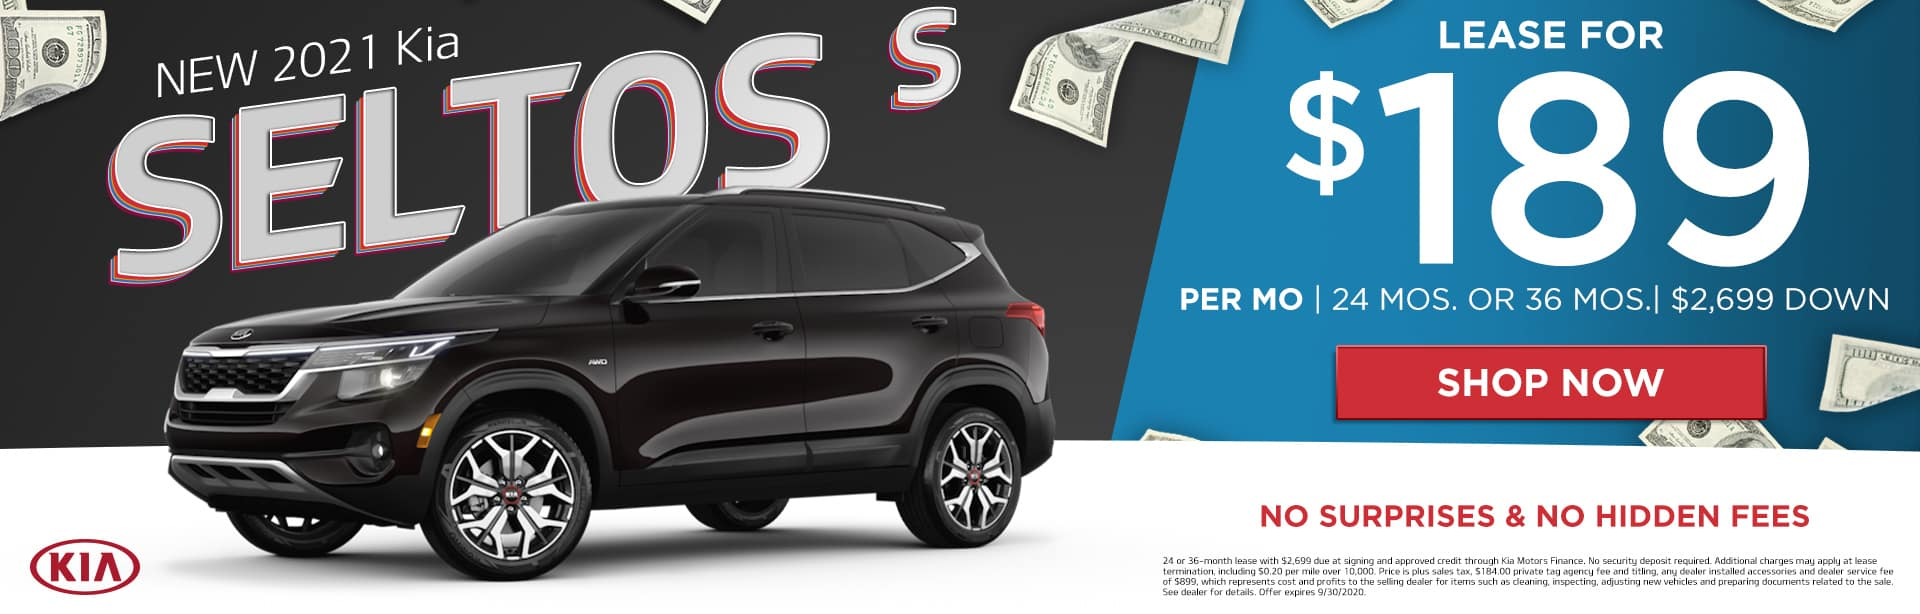 New 2021 Kia Seltos | Lease For $189 Per Month | 24 Months or 36 Months | $2,699 Down | No Surprises & No Hidden Fees